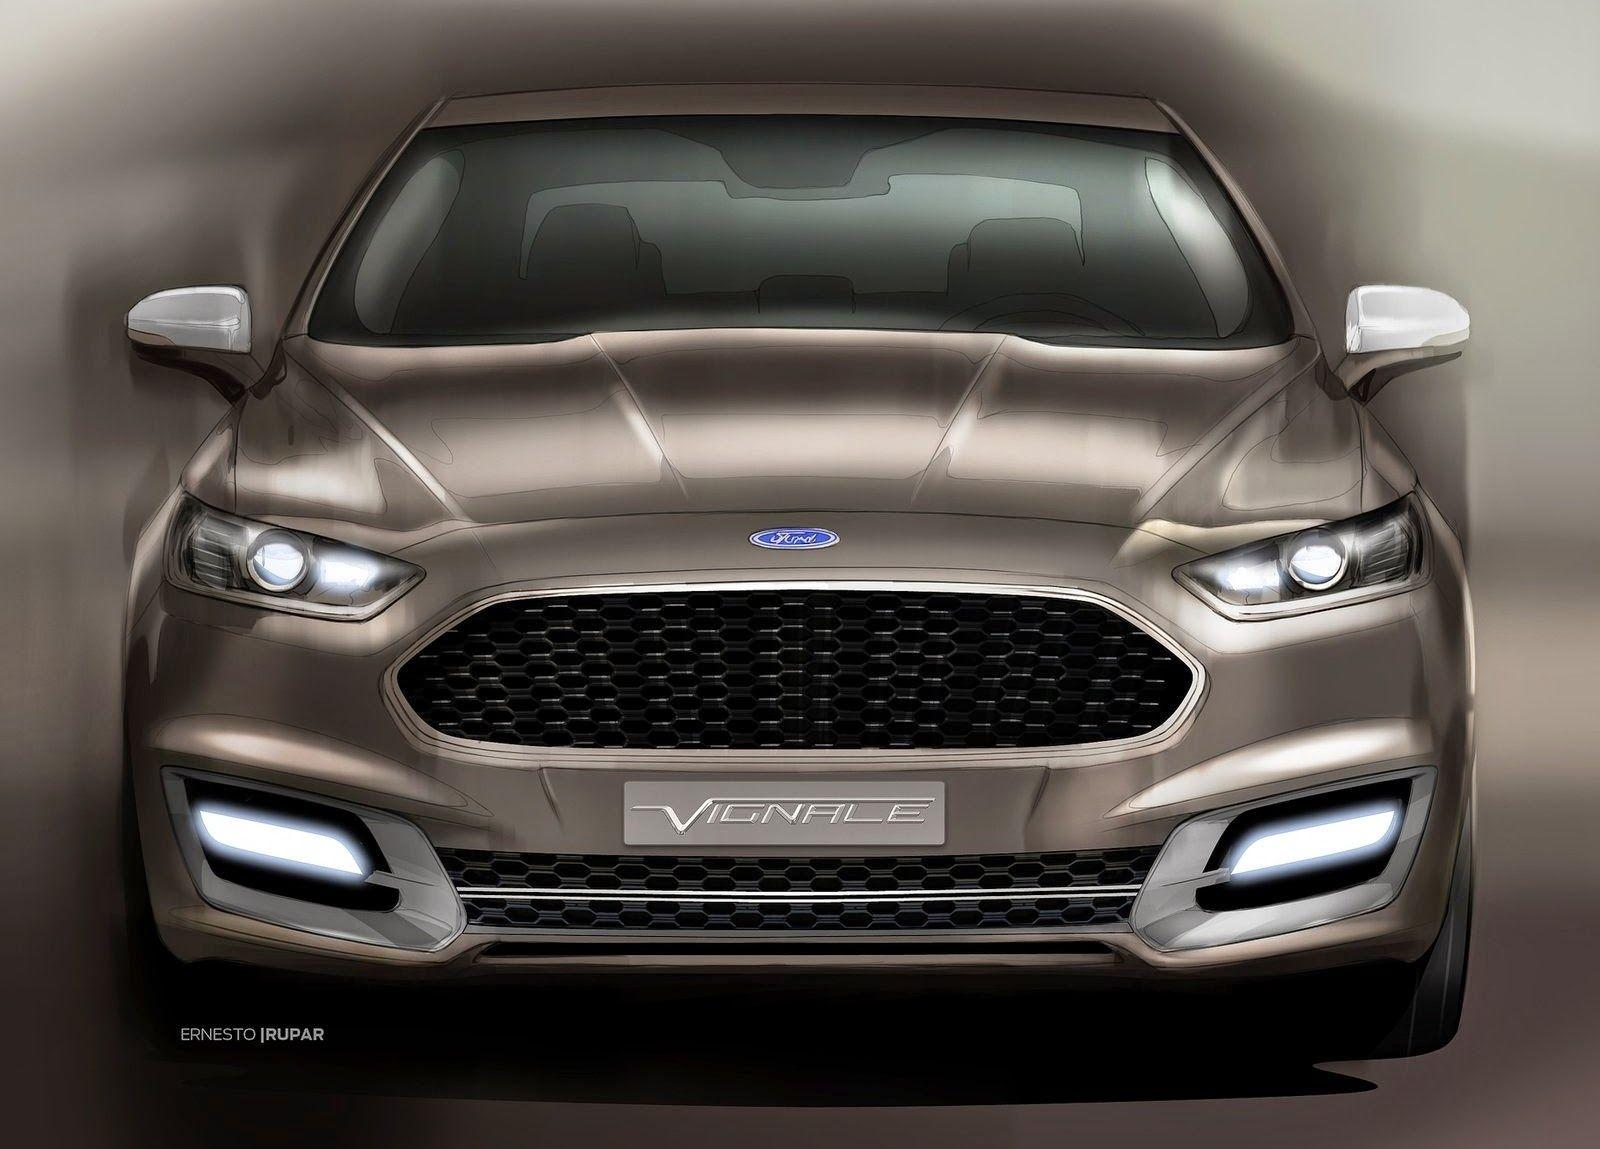 Ford Mondeo Wallpapers HD 5